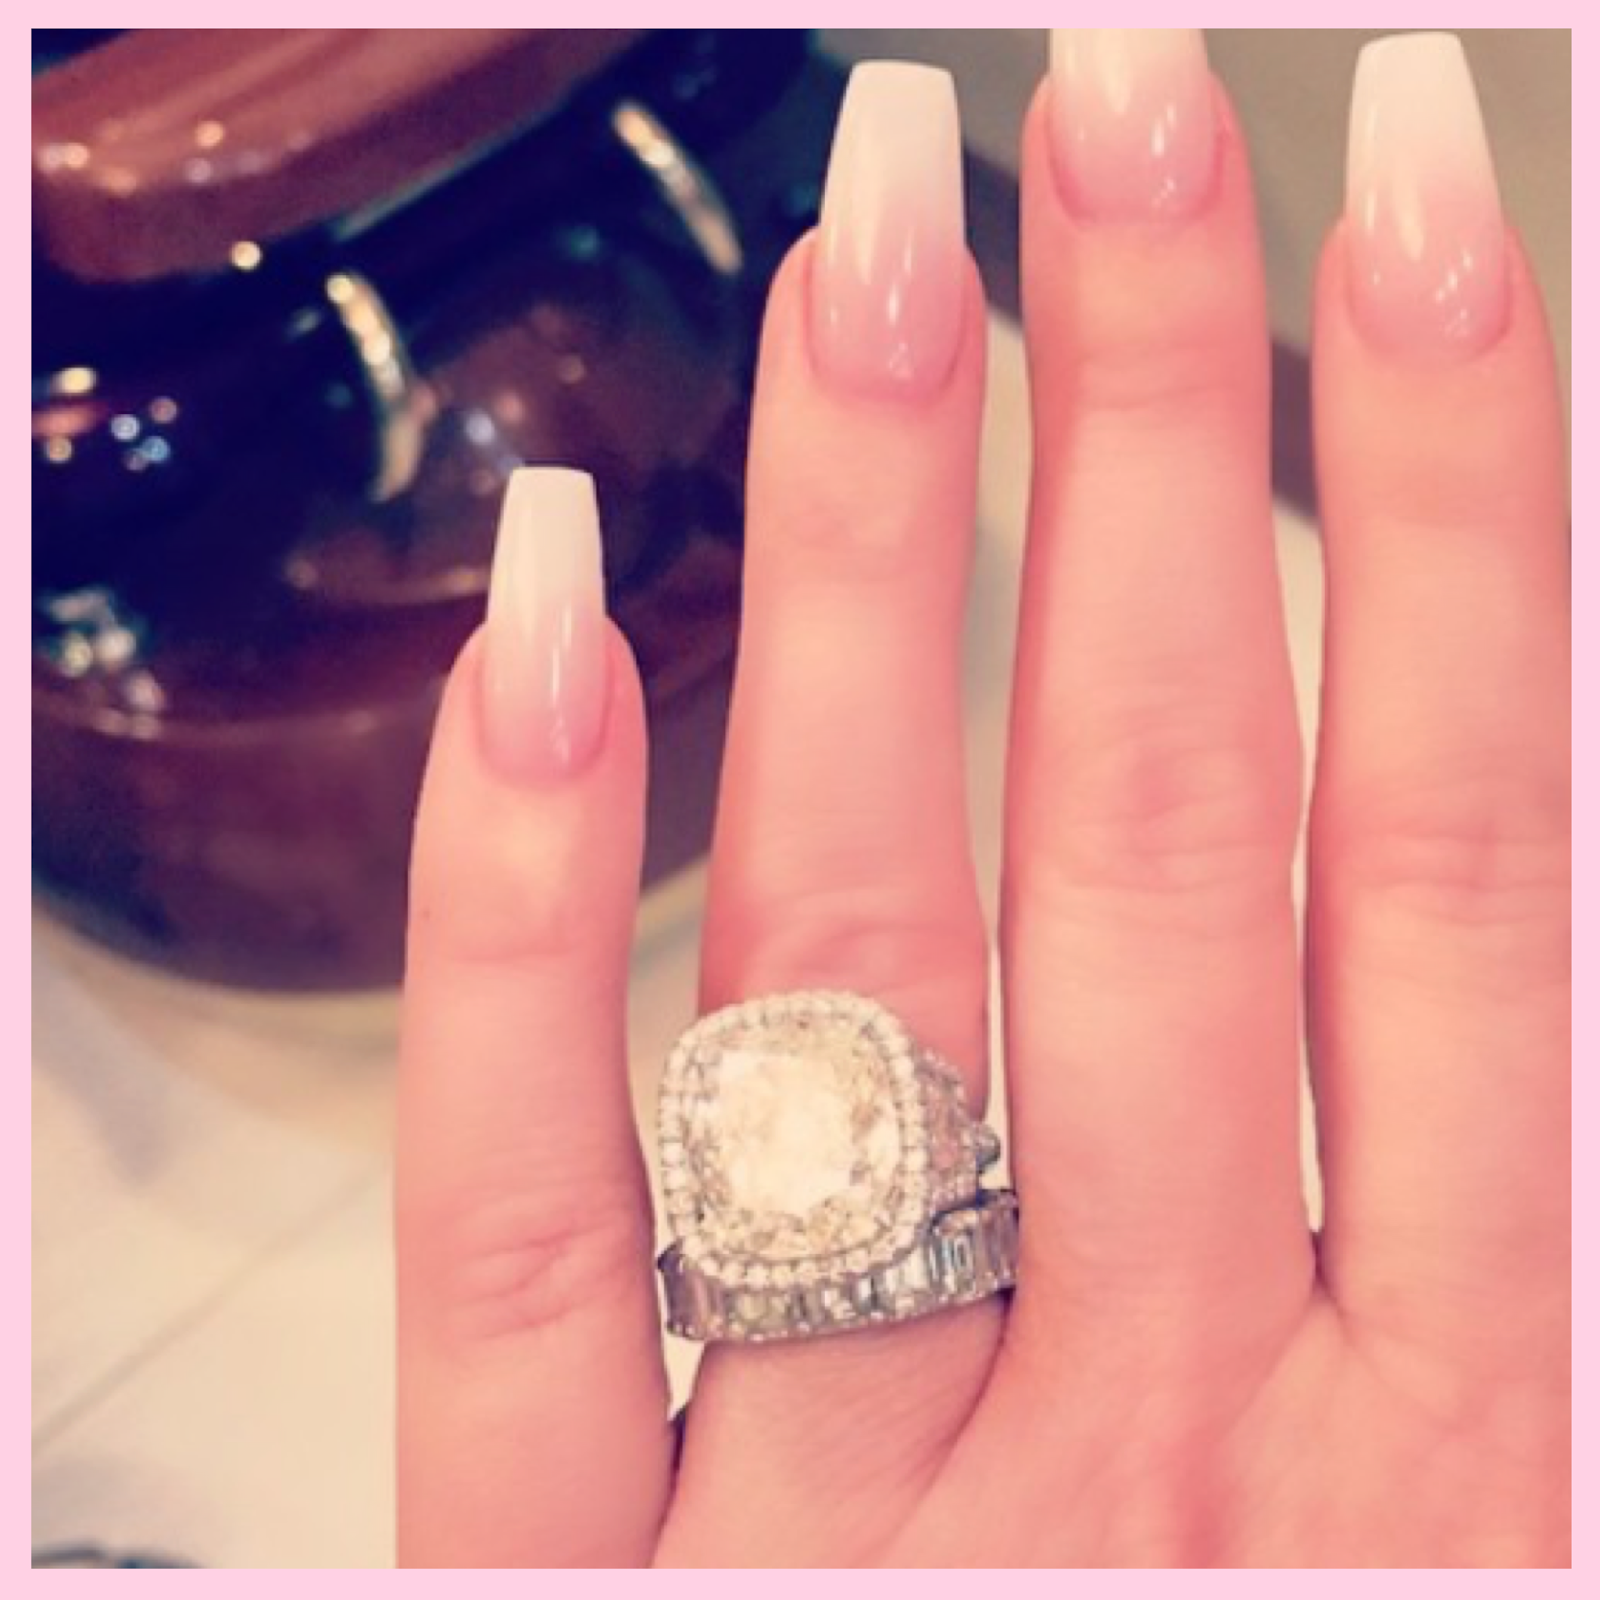 Julers Row: Celebrity Engagement Ring Recap, Kim Zolciak Biermann. Baby  Boomer Nails